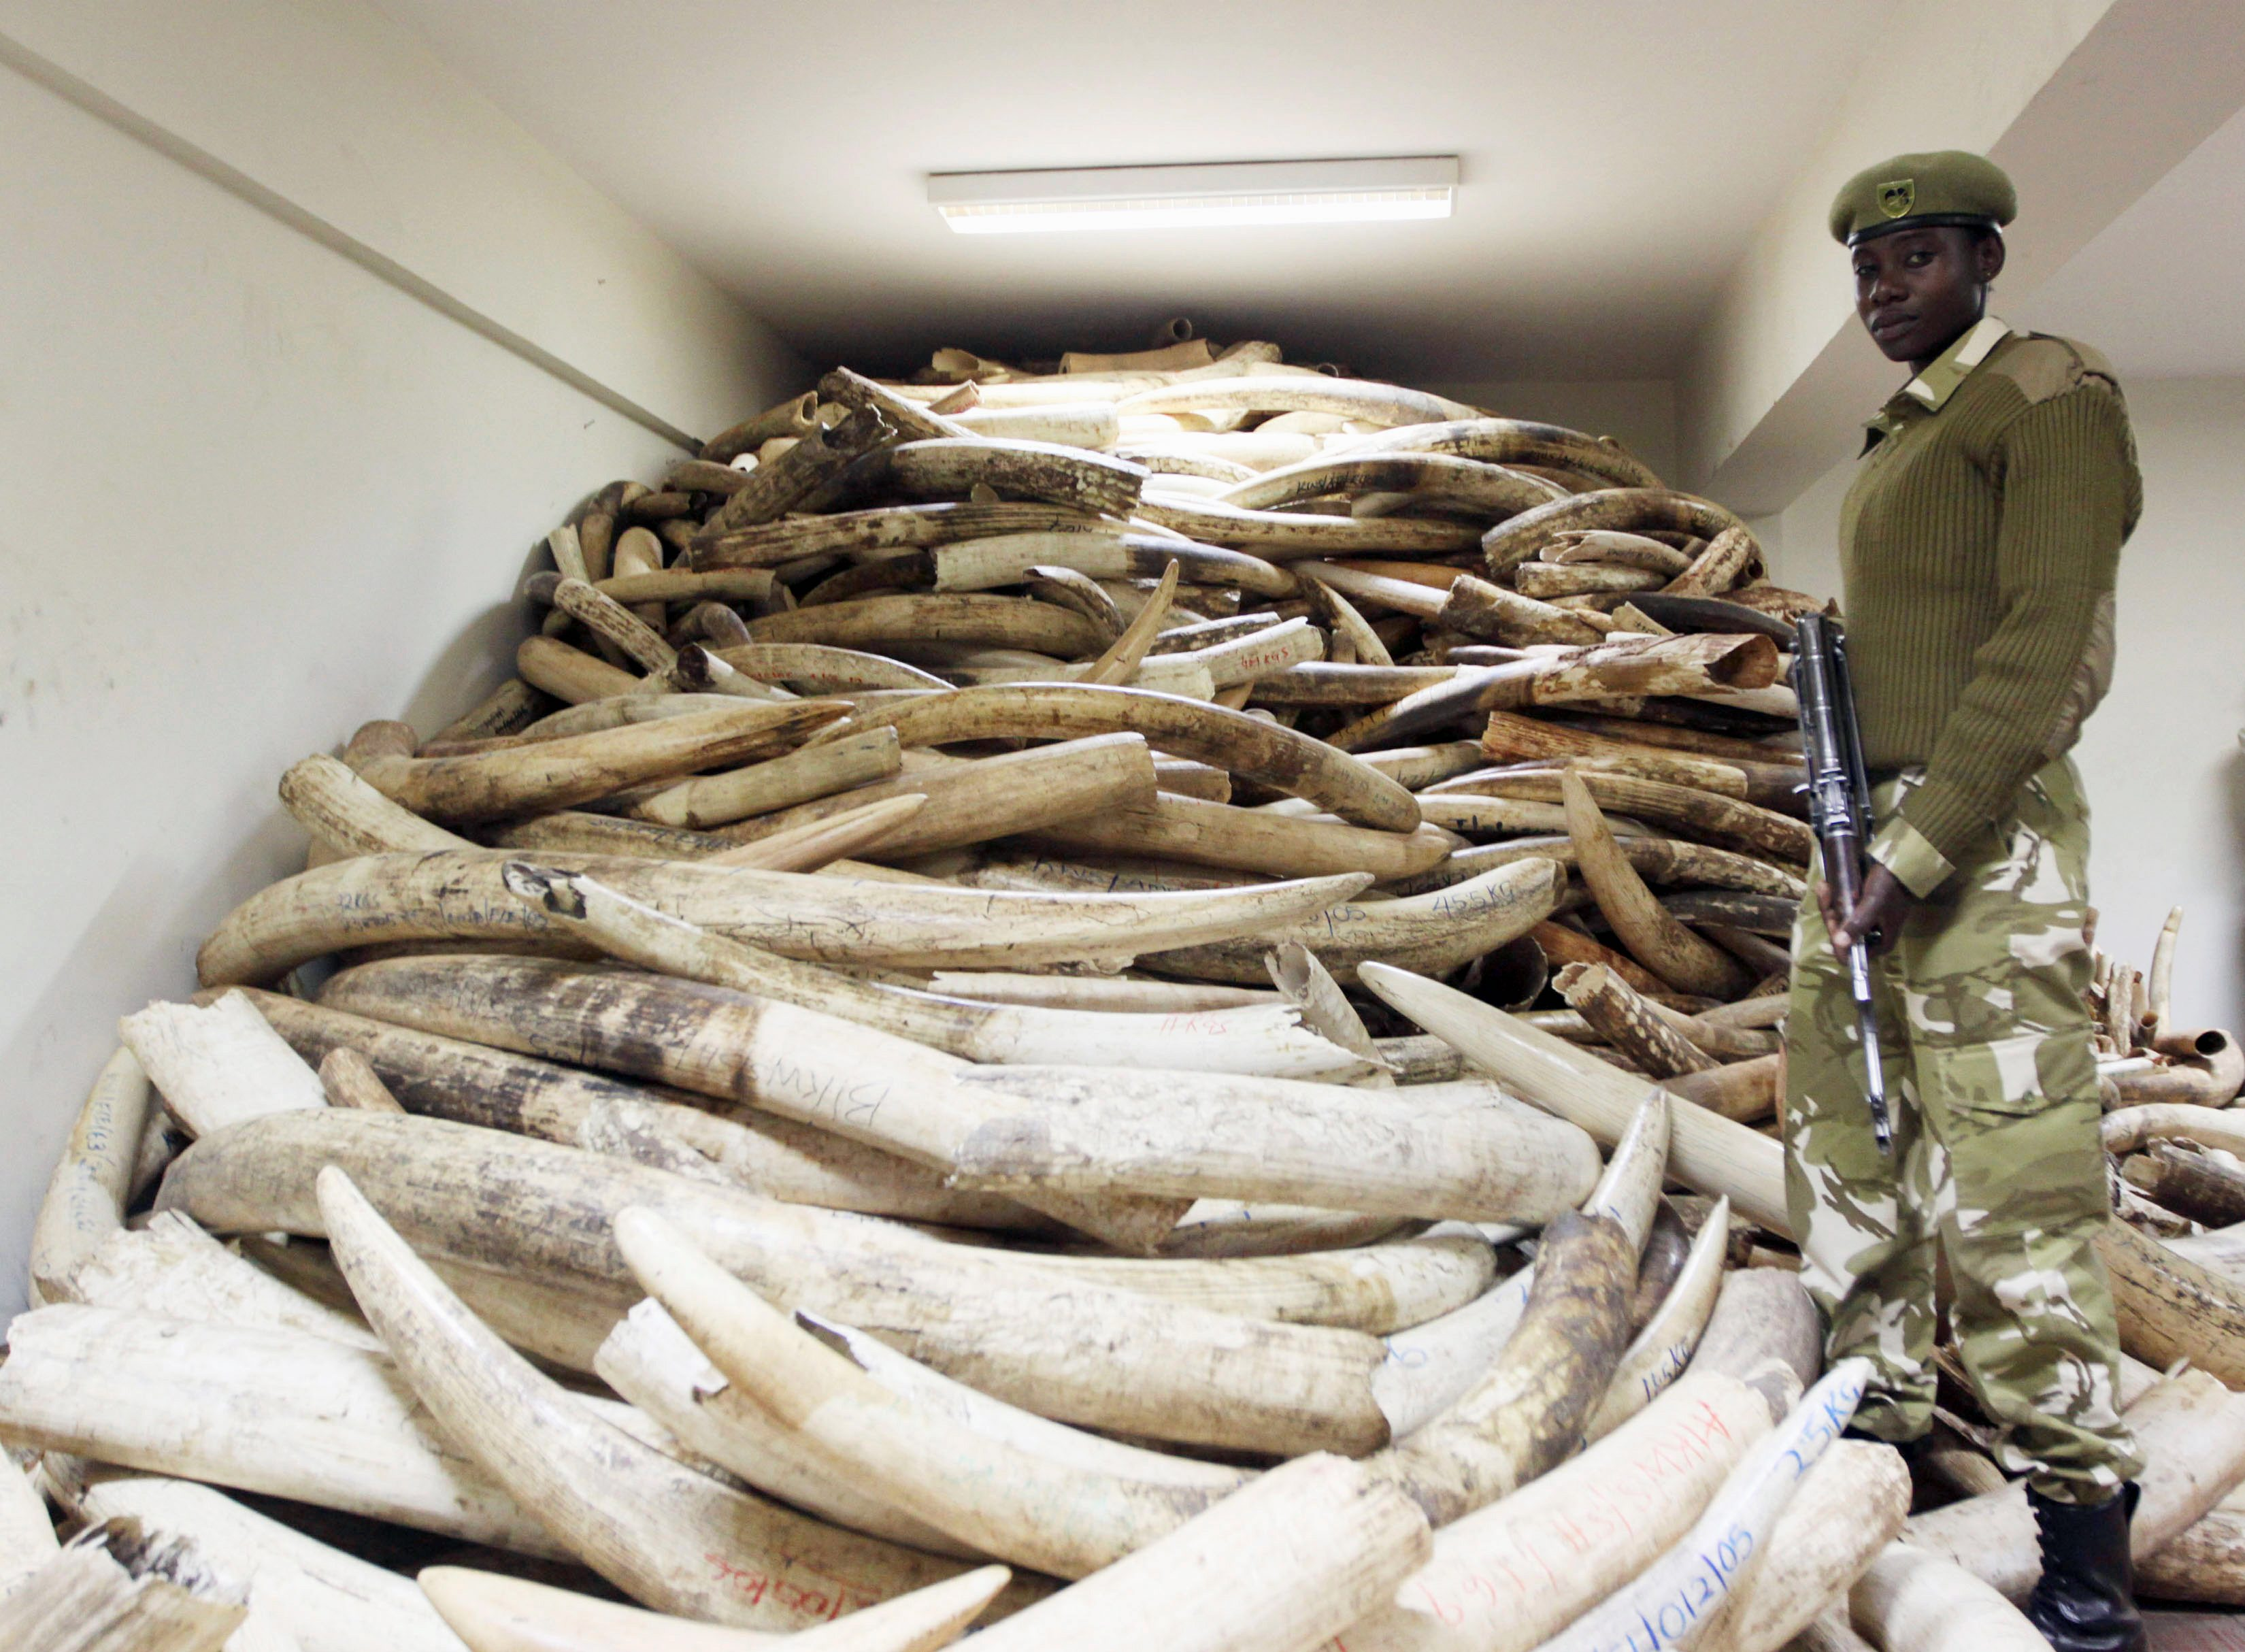 Terrorists slaughter African elephants, use ivory to finance operation